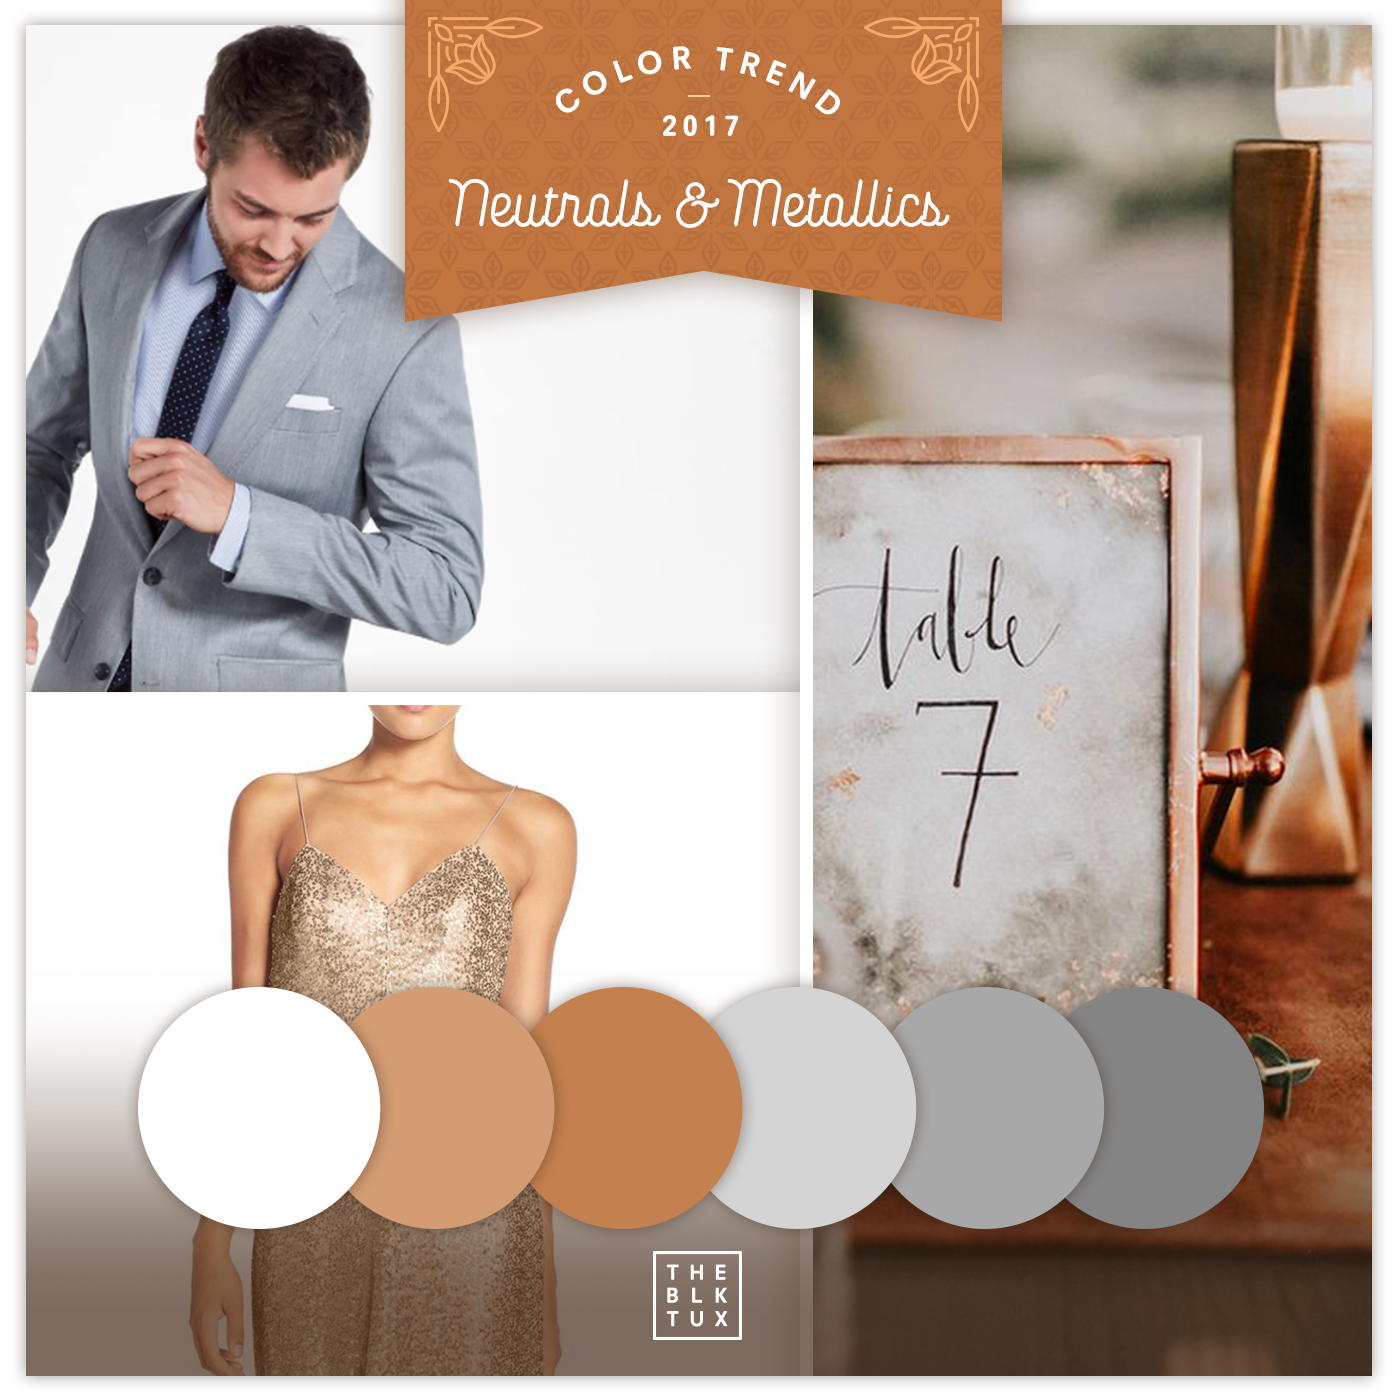 blktux_wedding_color_trends_x2.jpg